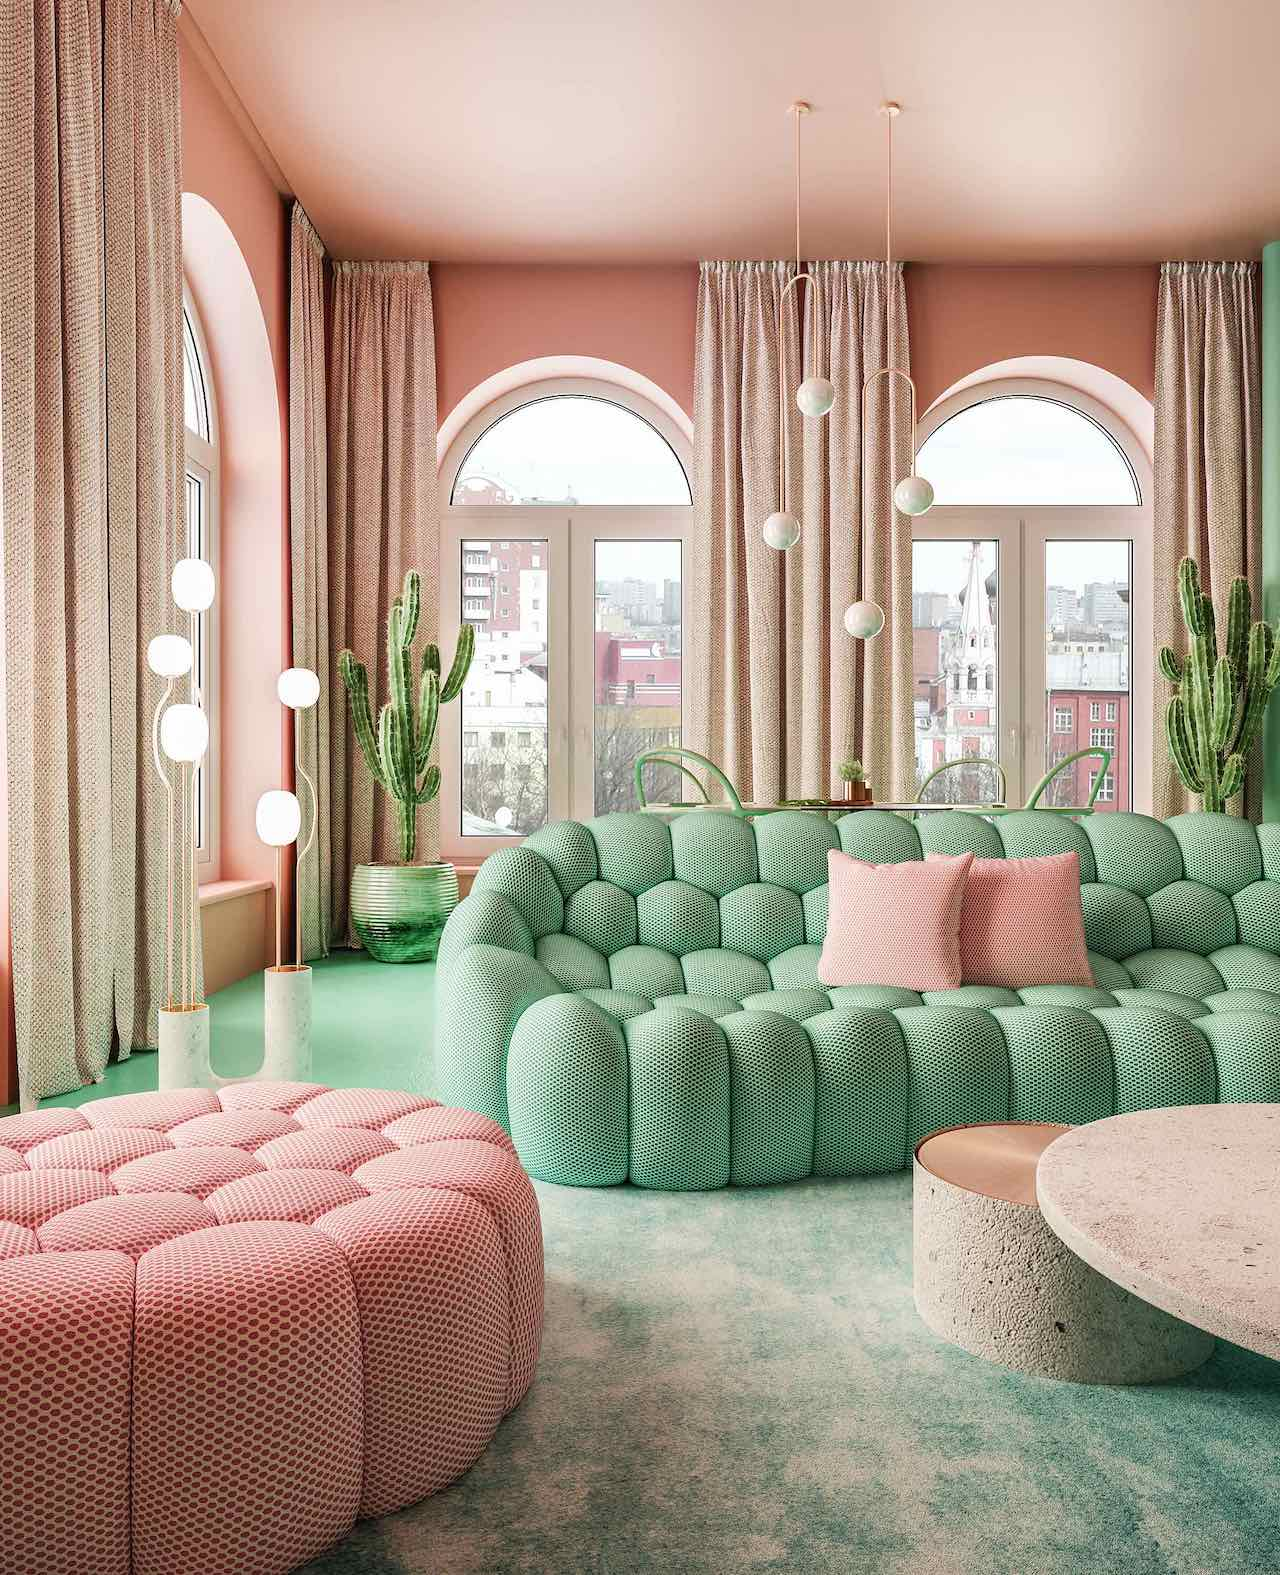 The Bubbles sofas are by Sacha Lakic for La Roche Bobois, the coffee tables in copper and concrete are by Dmitry Reutov and the lamps are by Michael Anastassiades Factory.